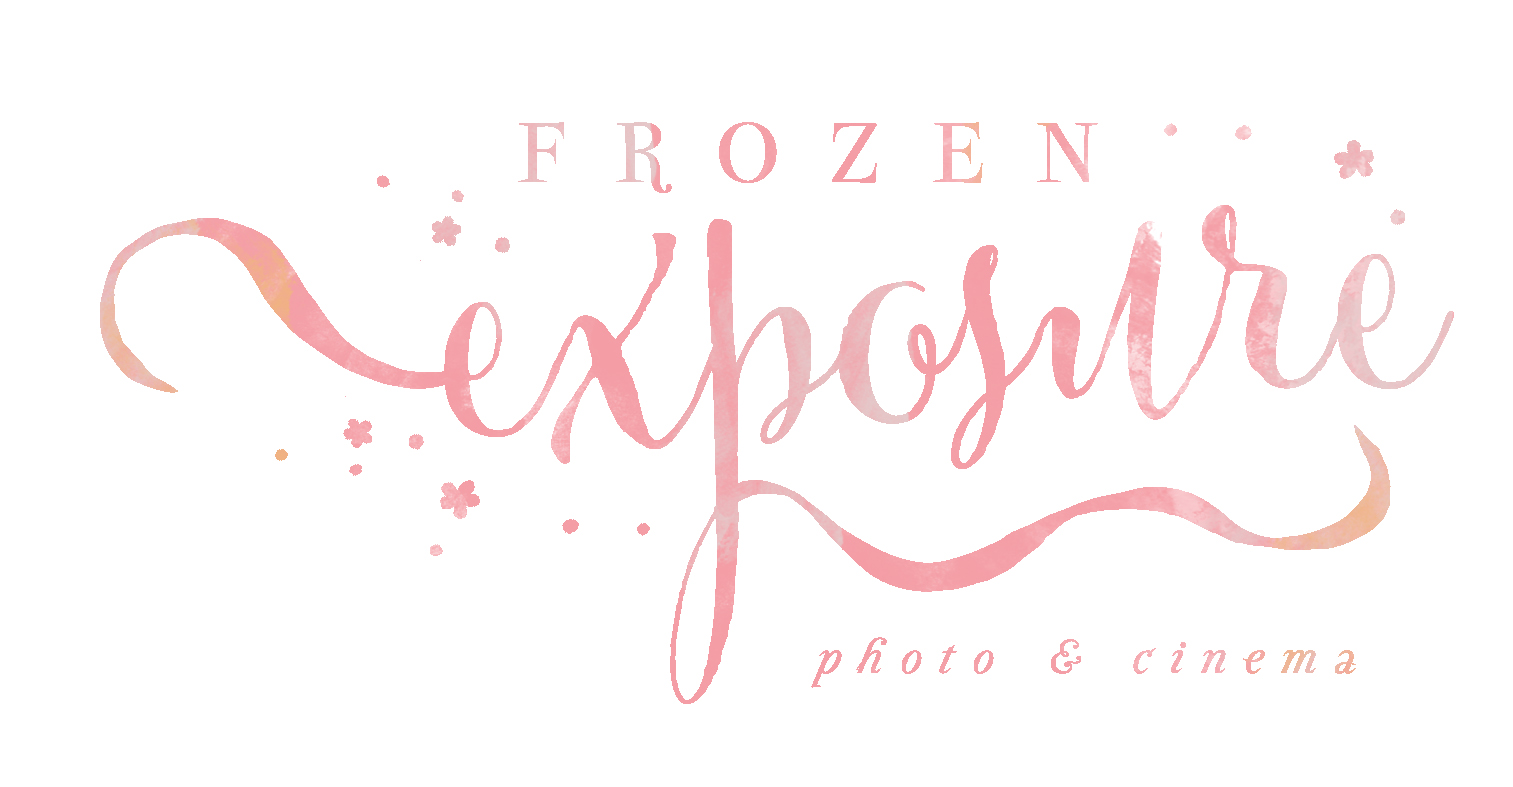 Frozen Exposure Photo & Cinema